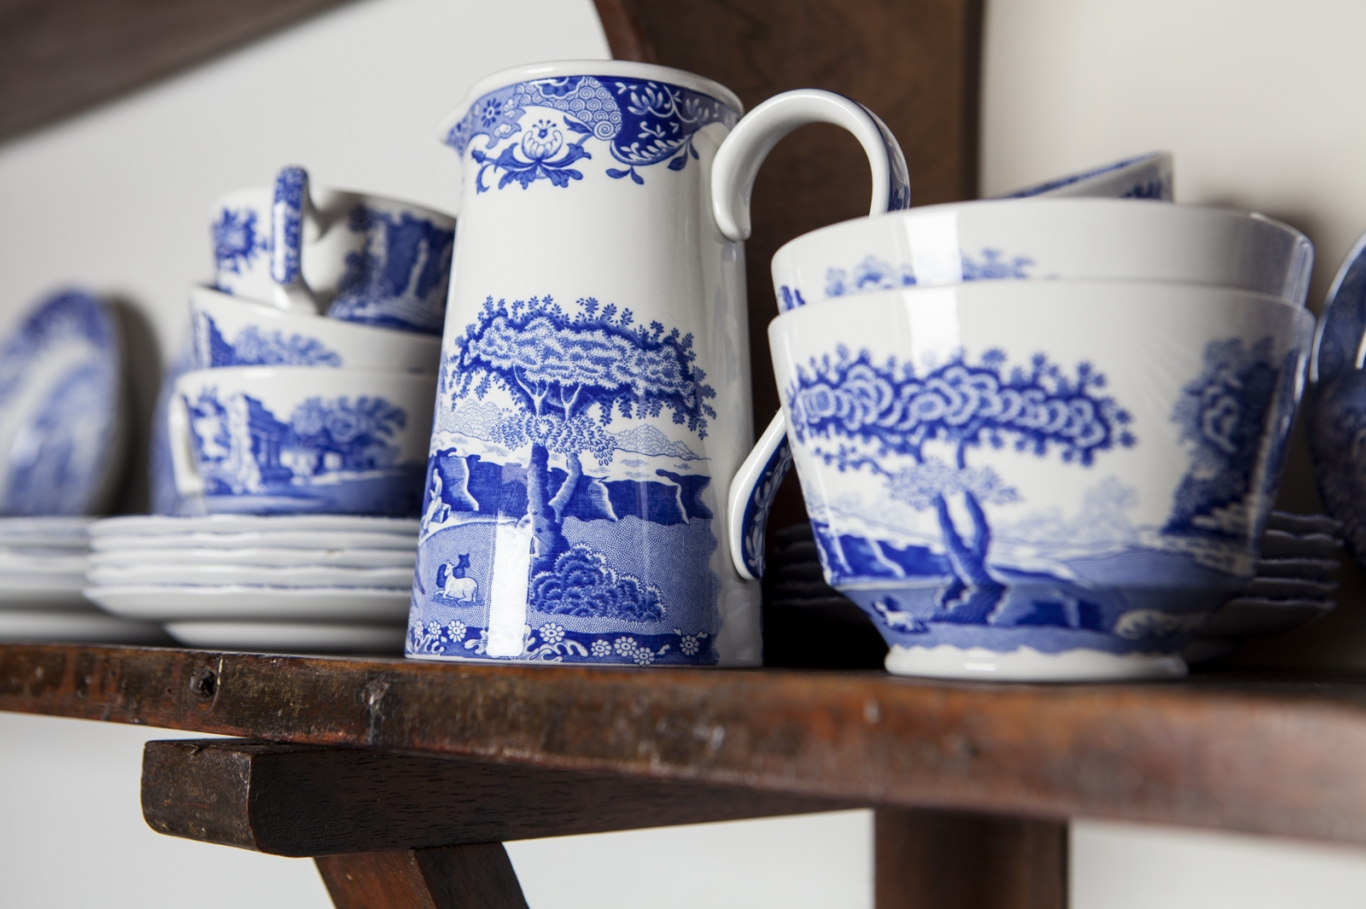 Row of blue and white crockery items on a wooden shelf.